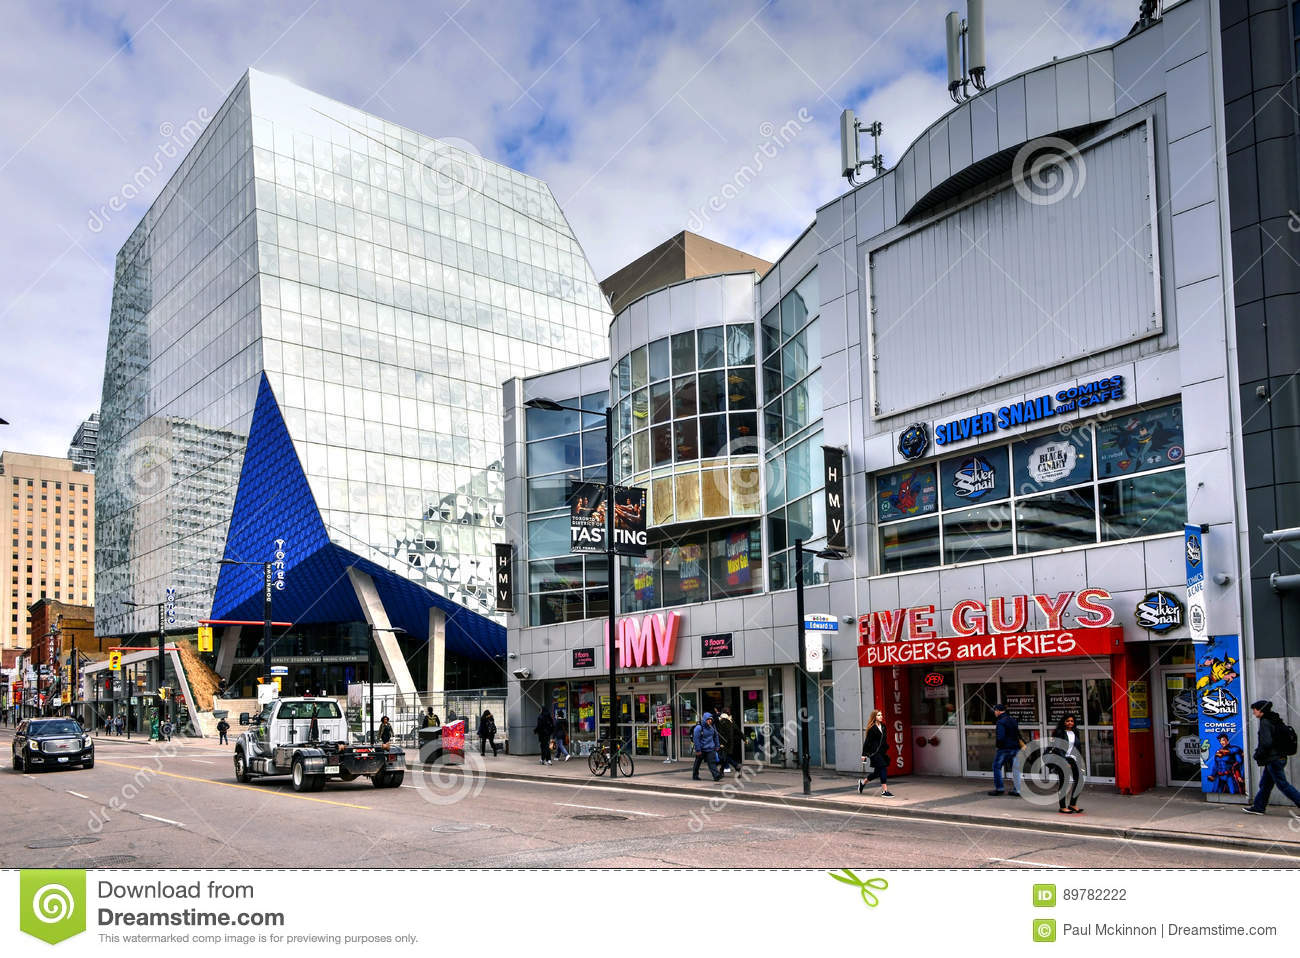 Toronto Canada March 29 2017 Section Of Yonge Street Near Dundas That Includes A Five Guys Hmv With Closing Signs In Window And Glbuilding Of